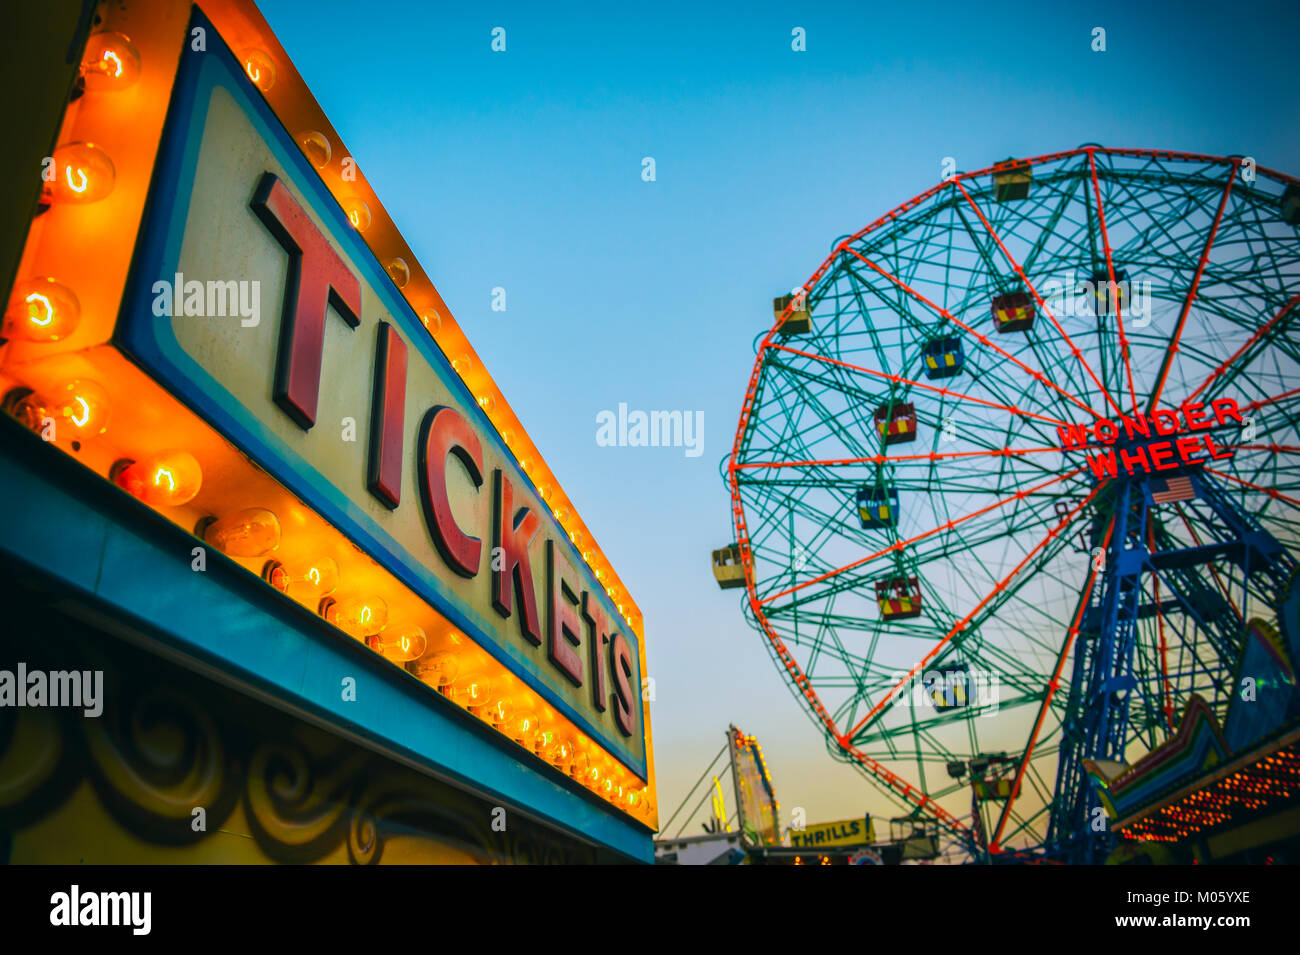 NEW YORK CITY - AUGUST 20, 2017: The bright lights of the amusement park at Coney Island in Brooklyn glow in front - Stock Image